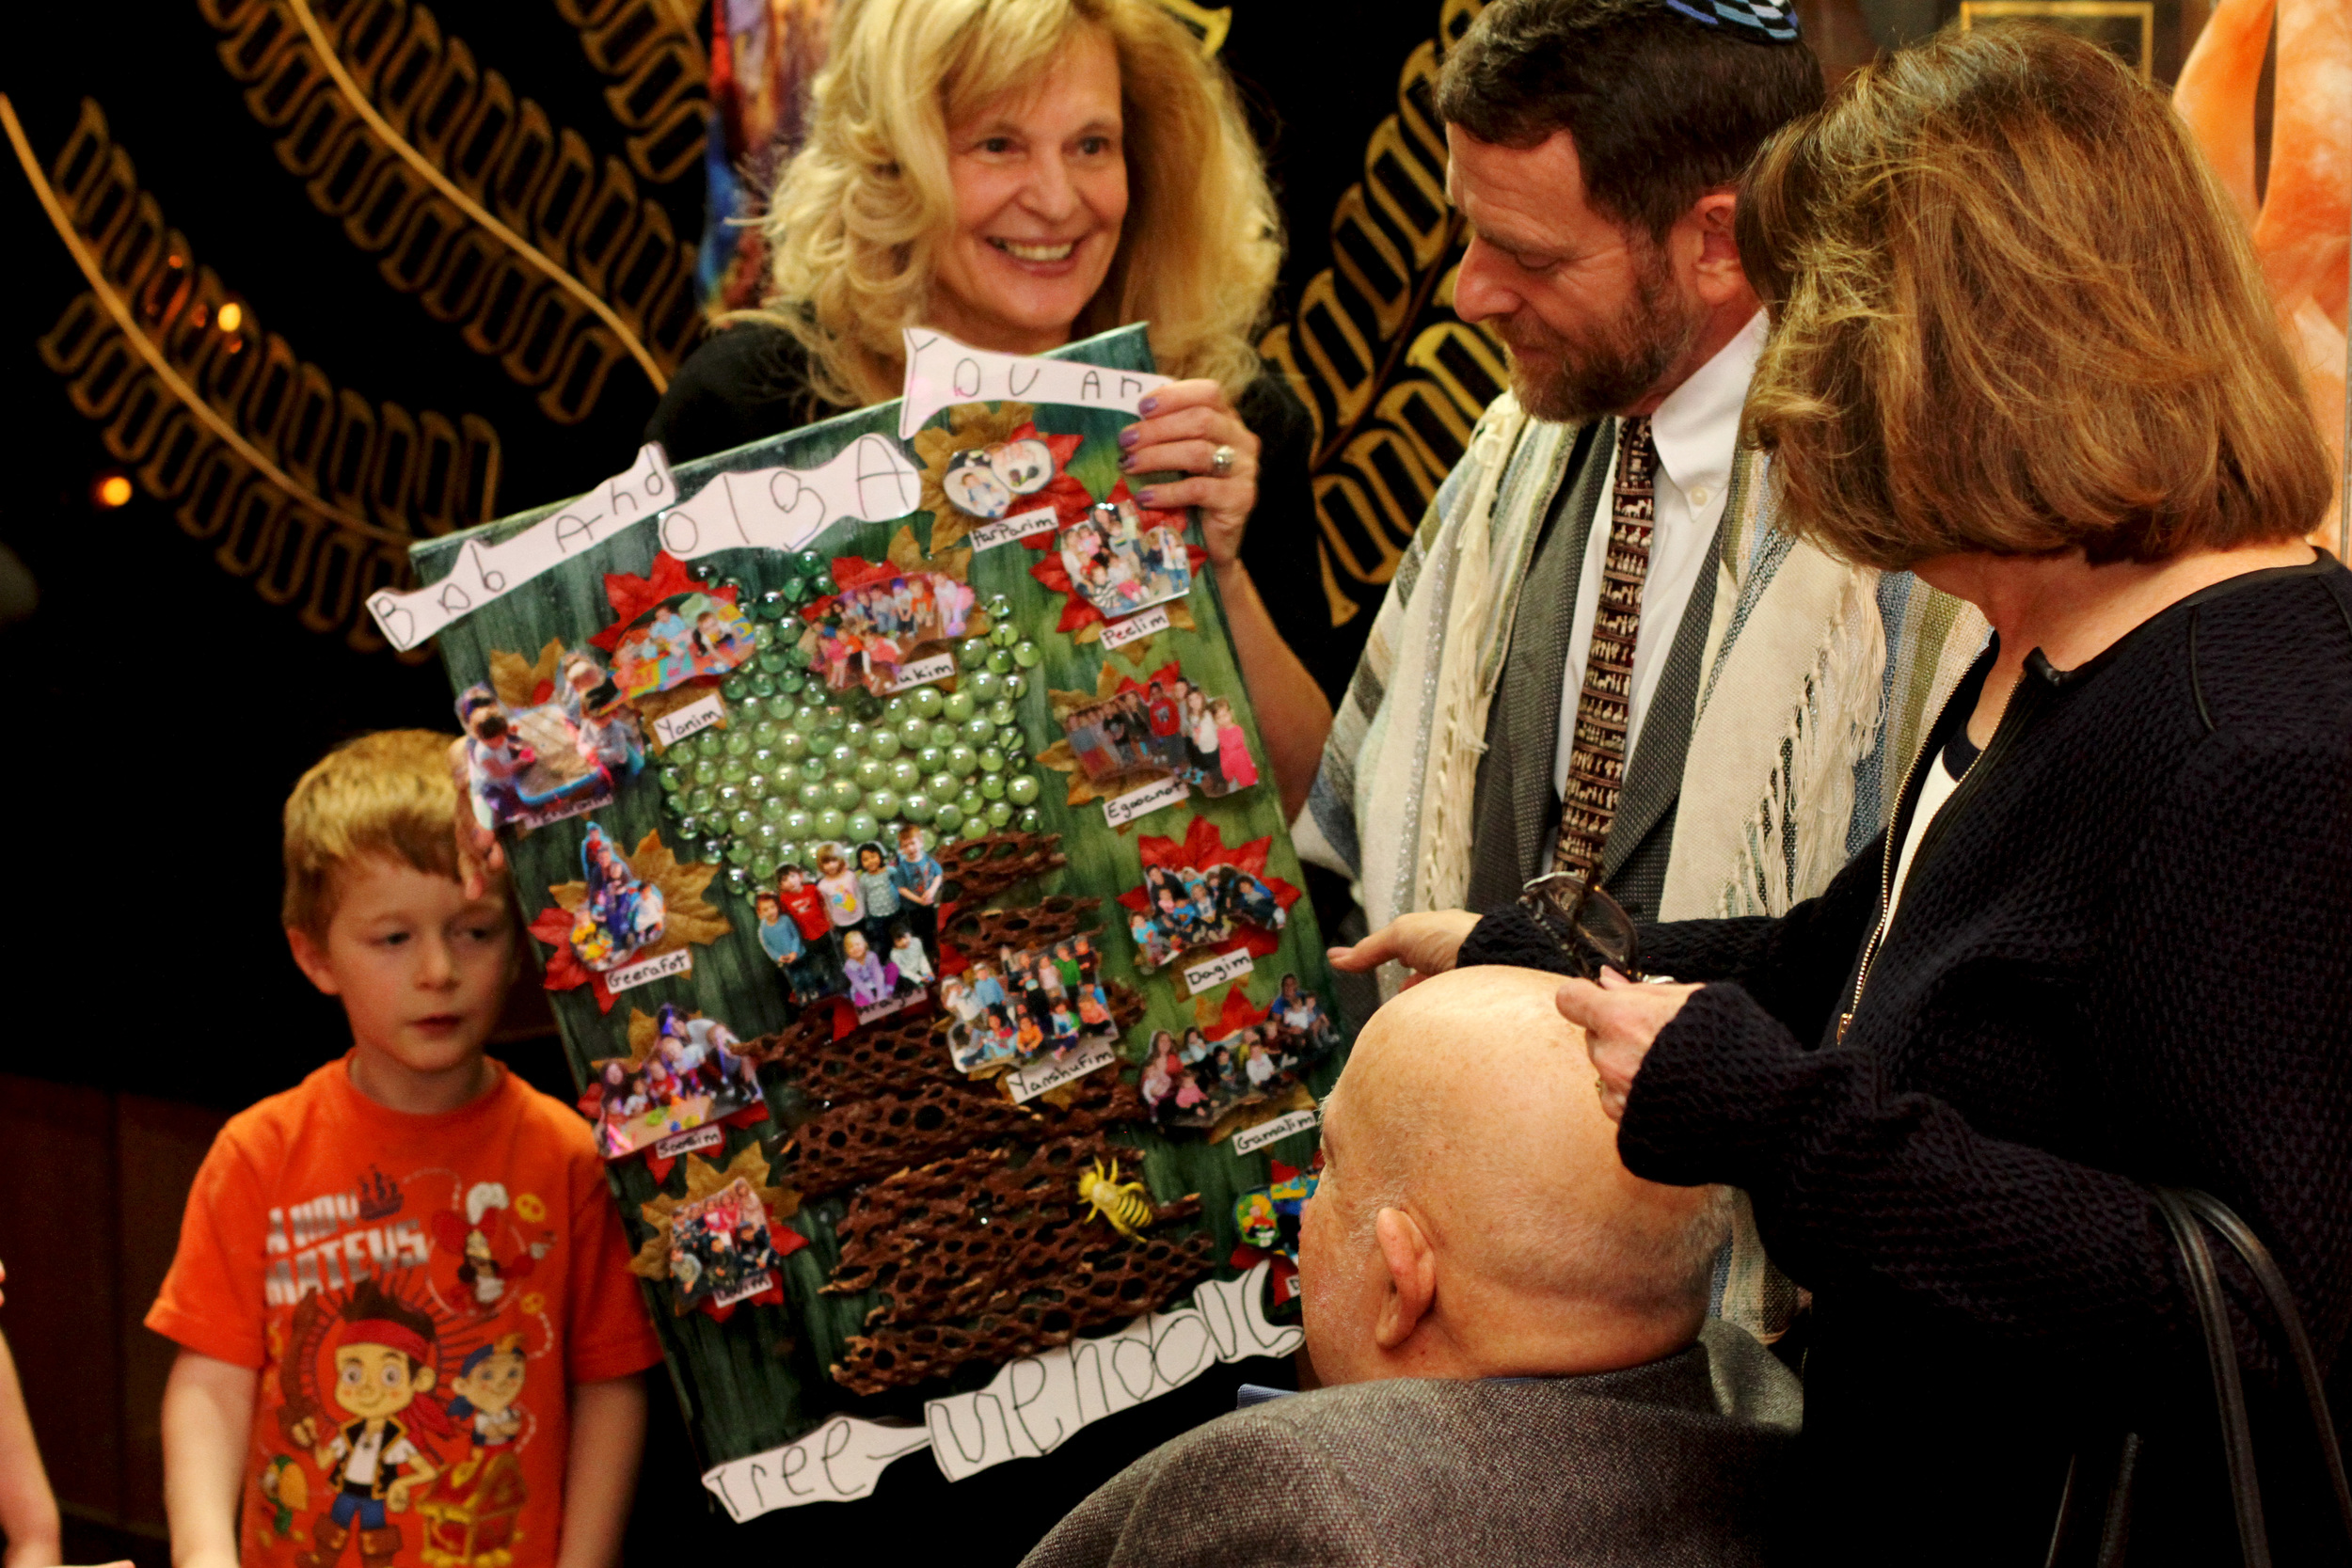 A child and the day care director present the artwork